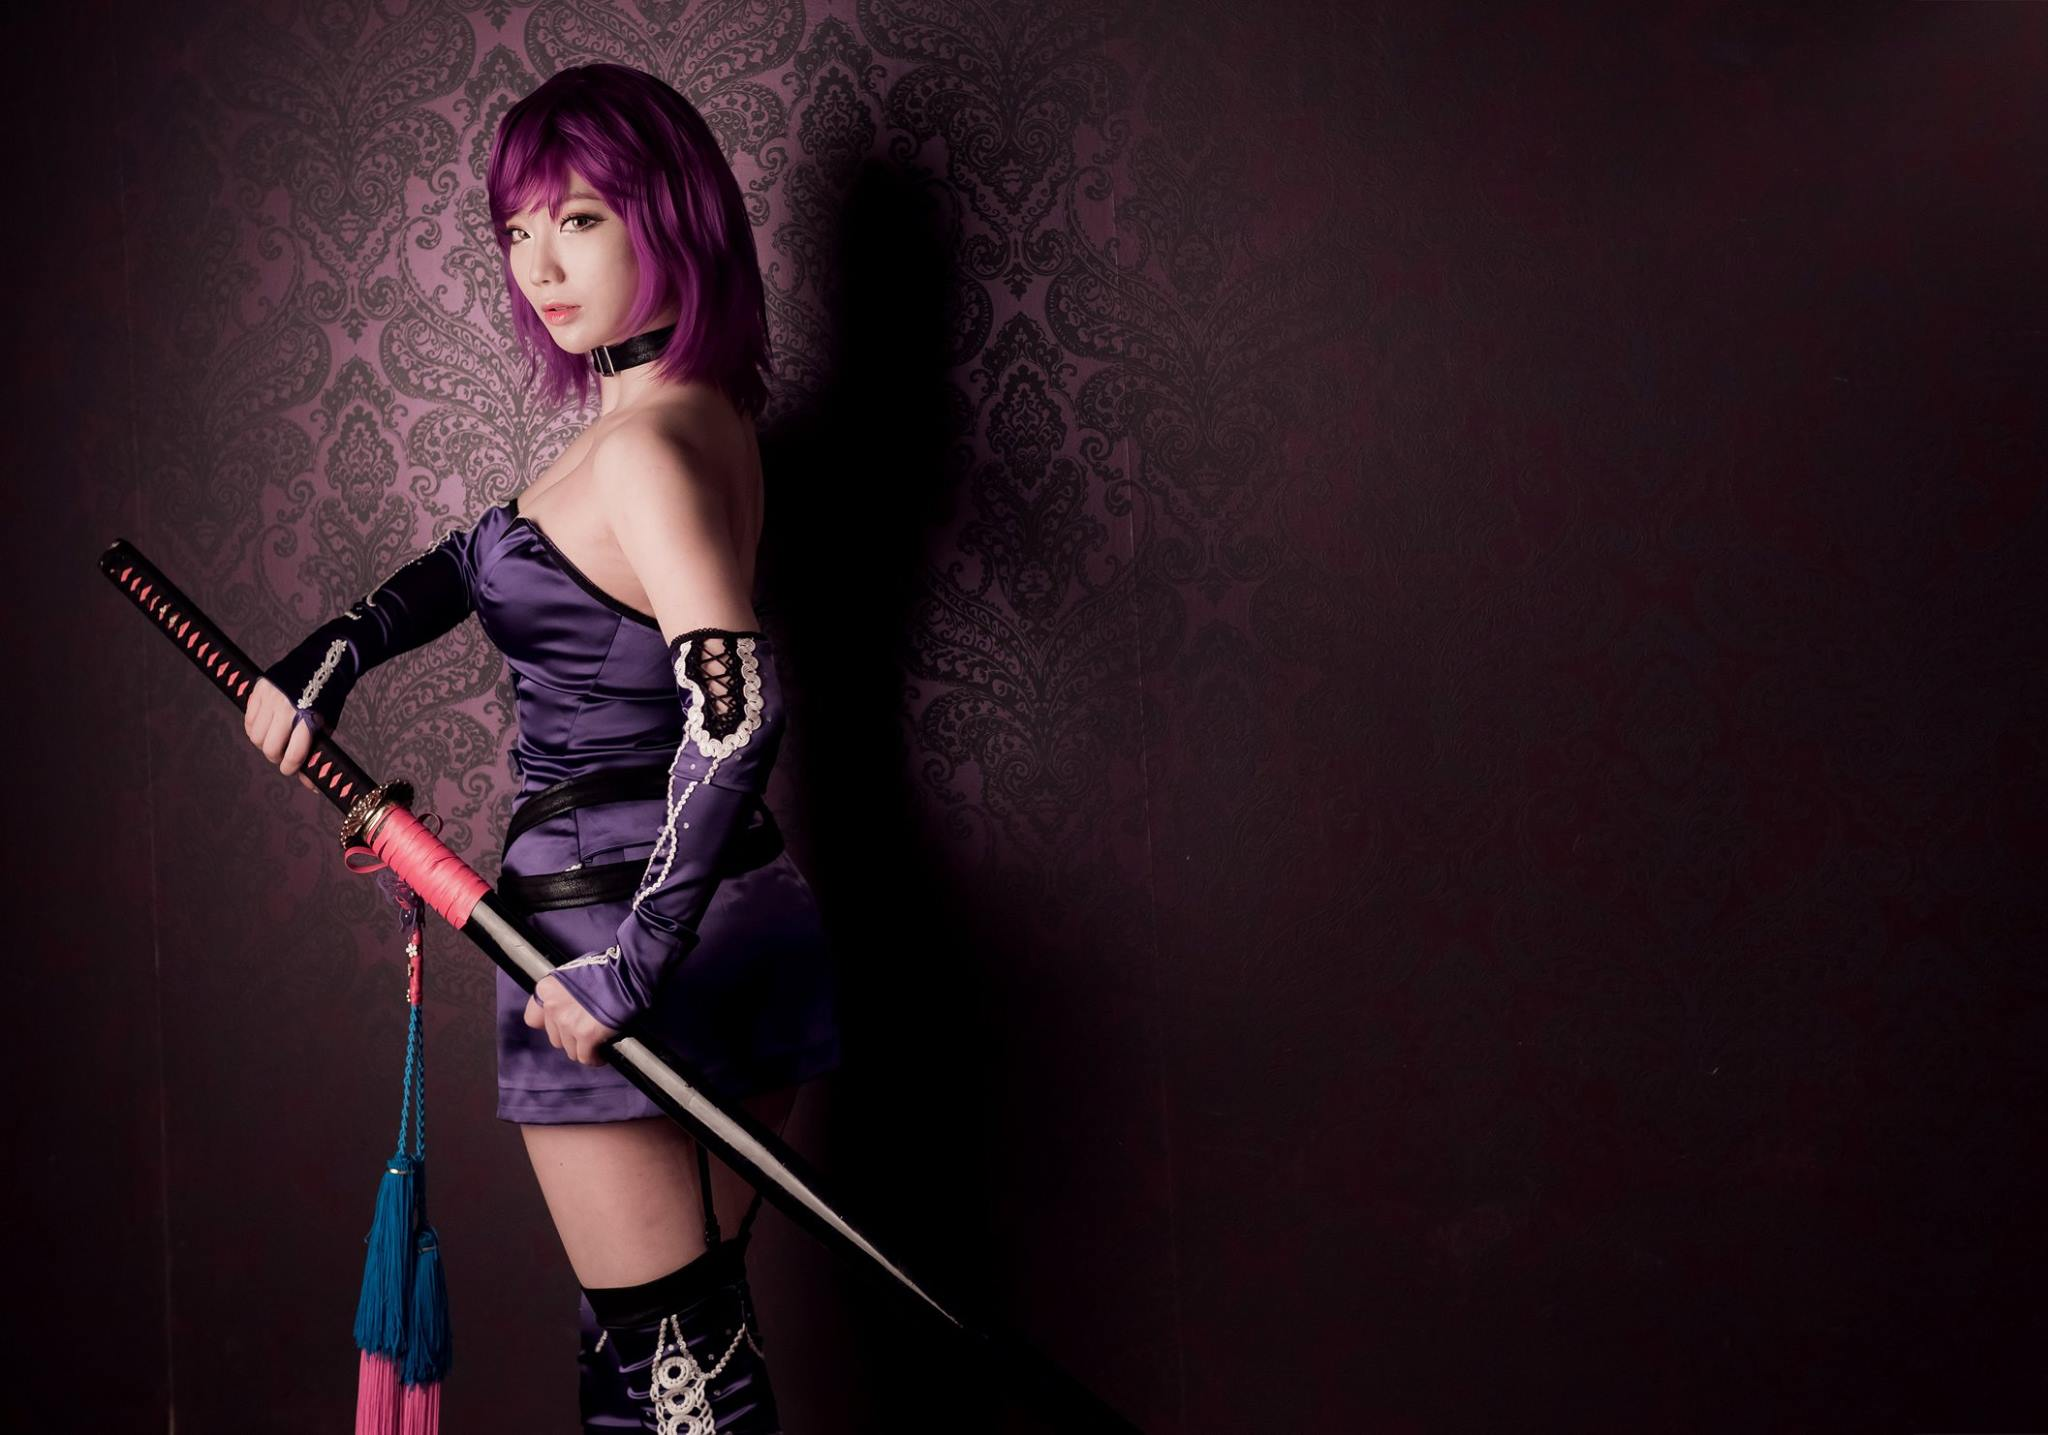 [Pion Kim] various cosplay collection